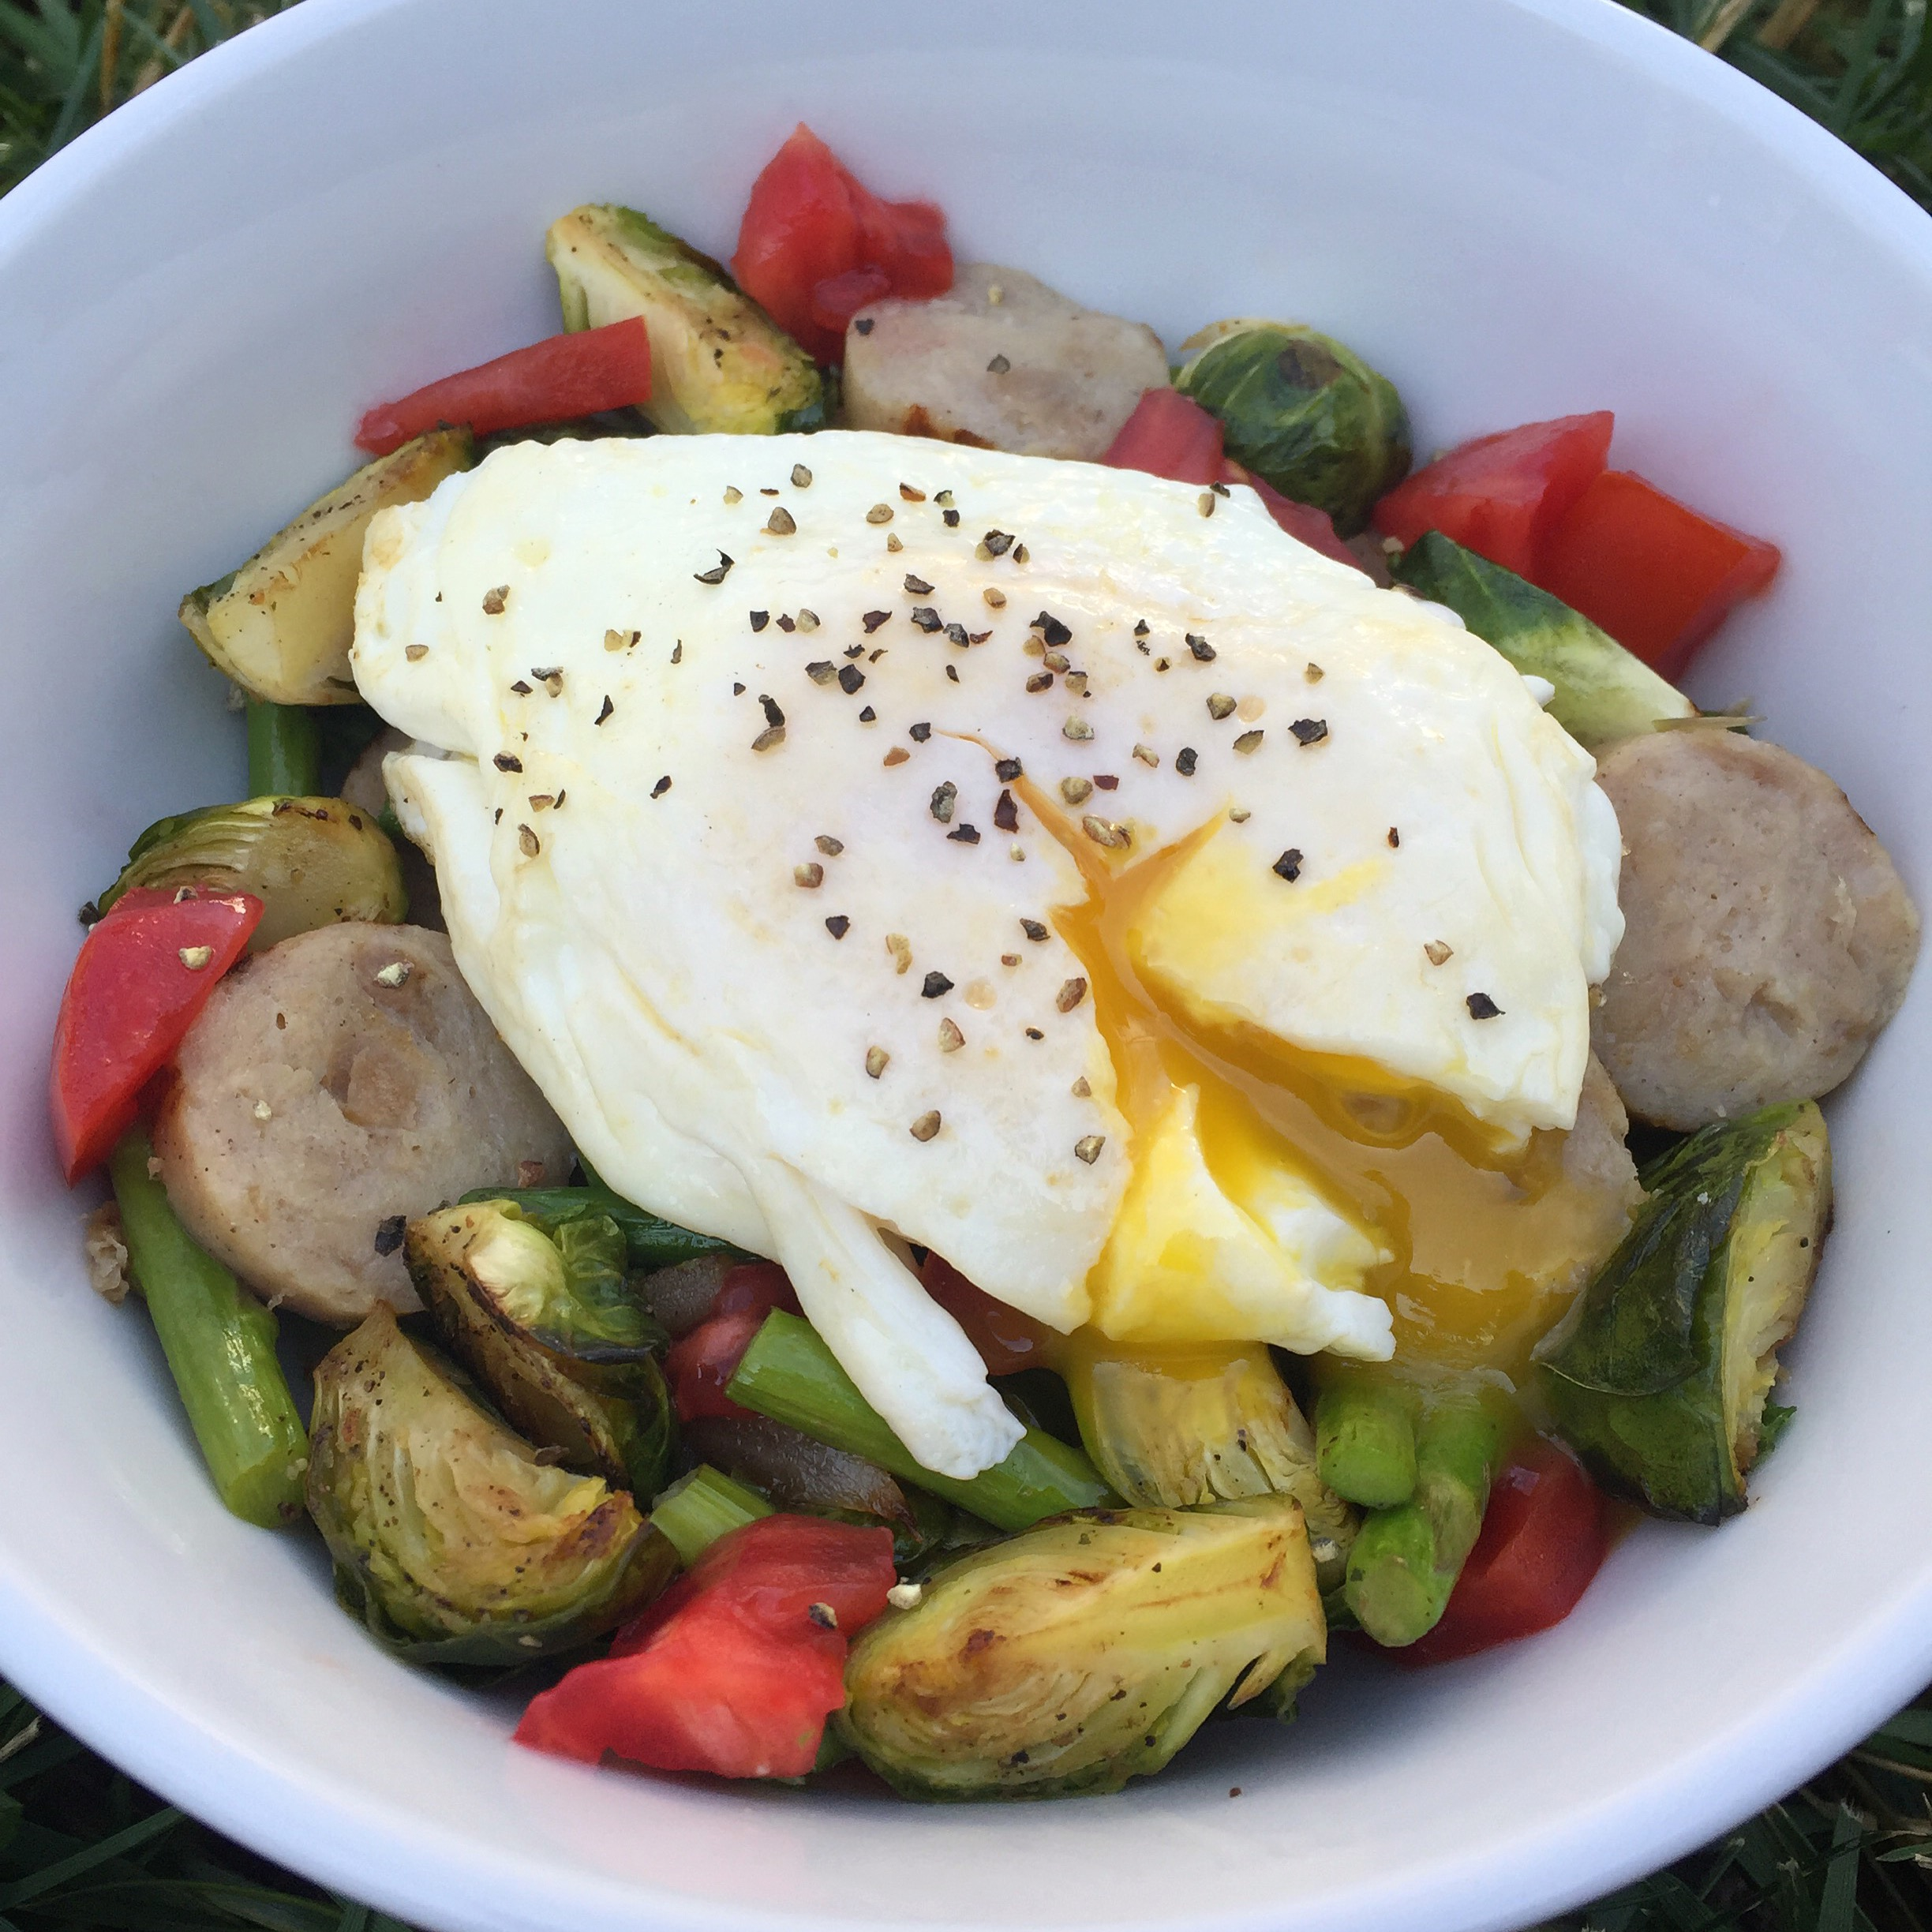 This particular day my egg bowl was filled with potatoes and spinach on the bottom, topped with leftover roasted asparagus and brussel sprouts, onions, a chicken sausage from Trader Joe's, tomatoes, a runny egg, salt/pepper, and a dollop of cottage cheese after I took the picture.